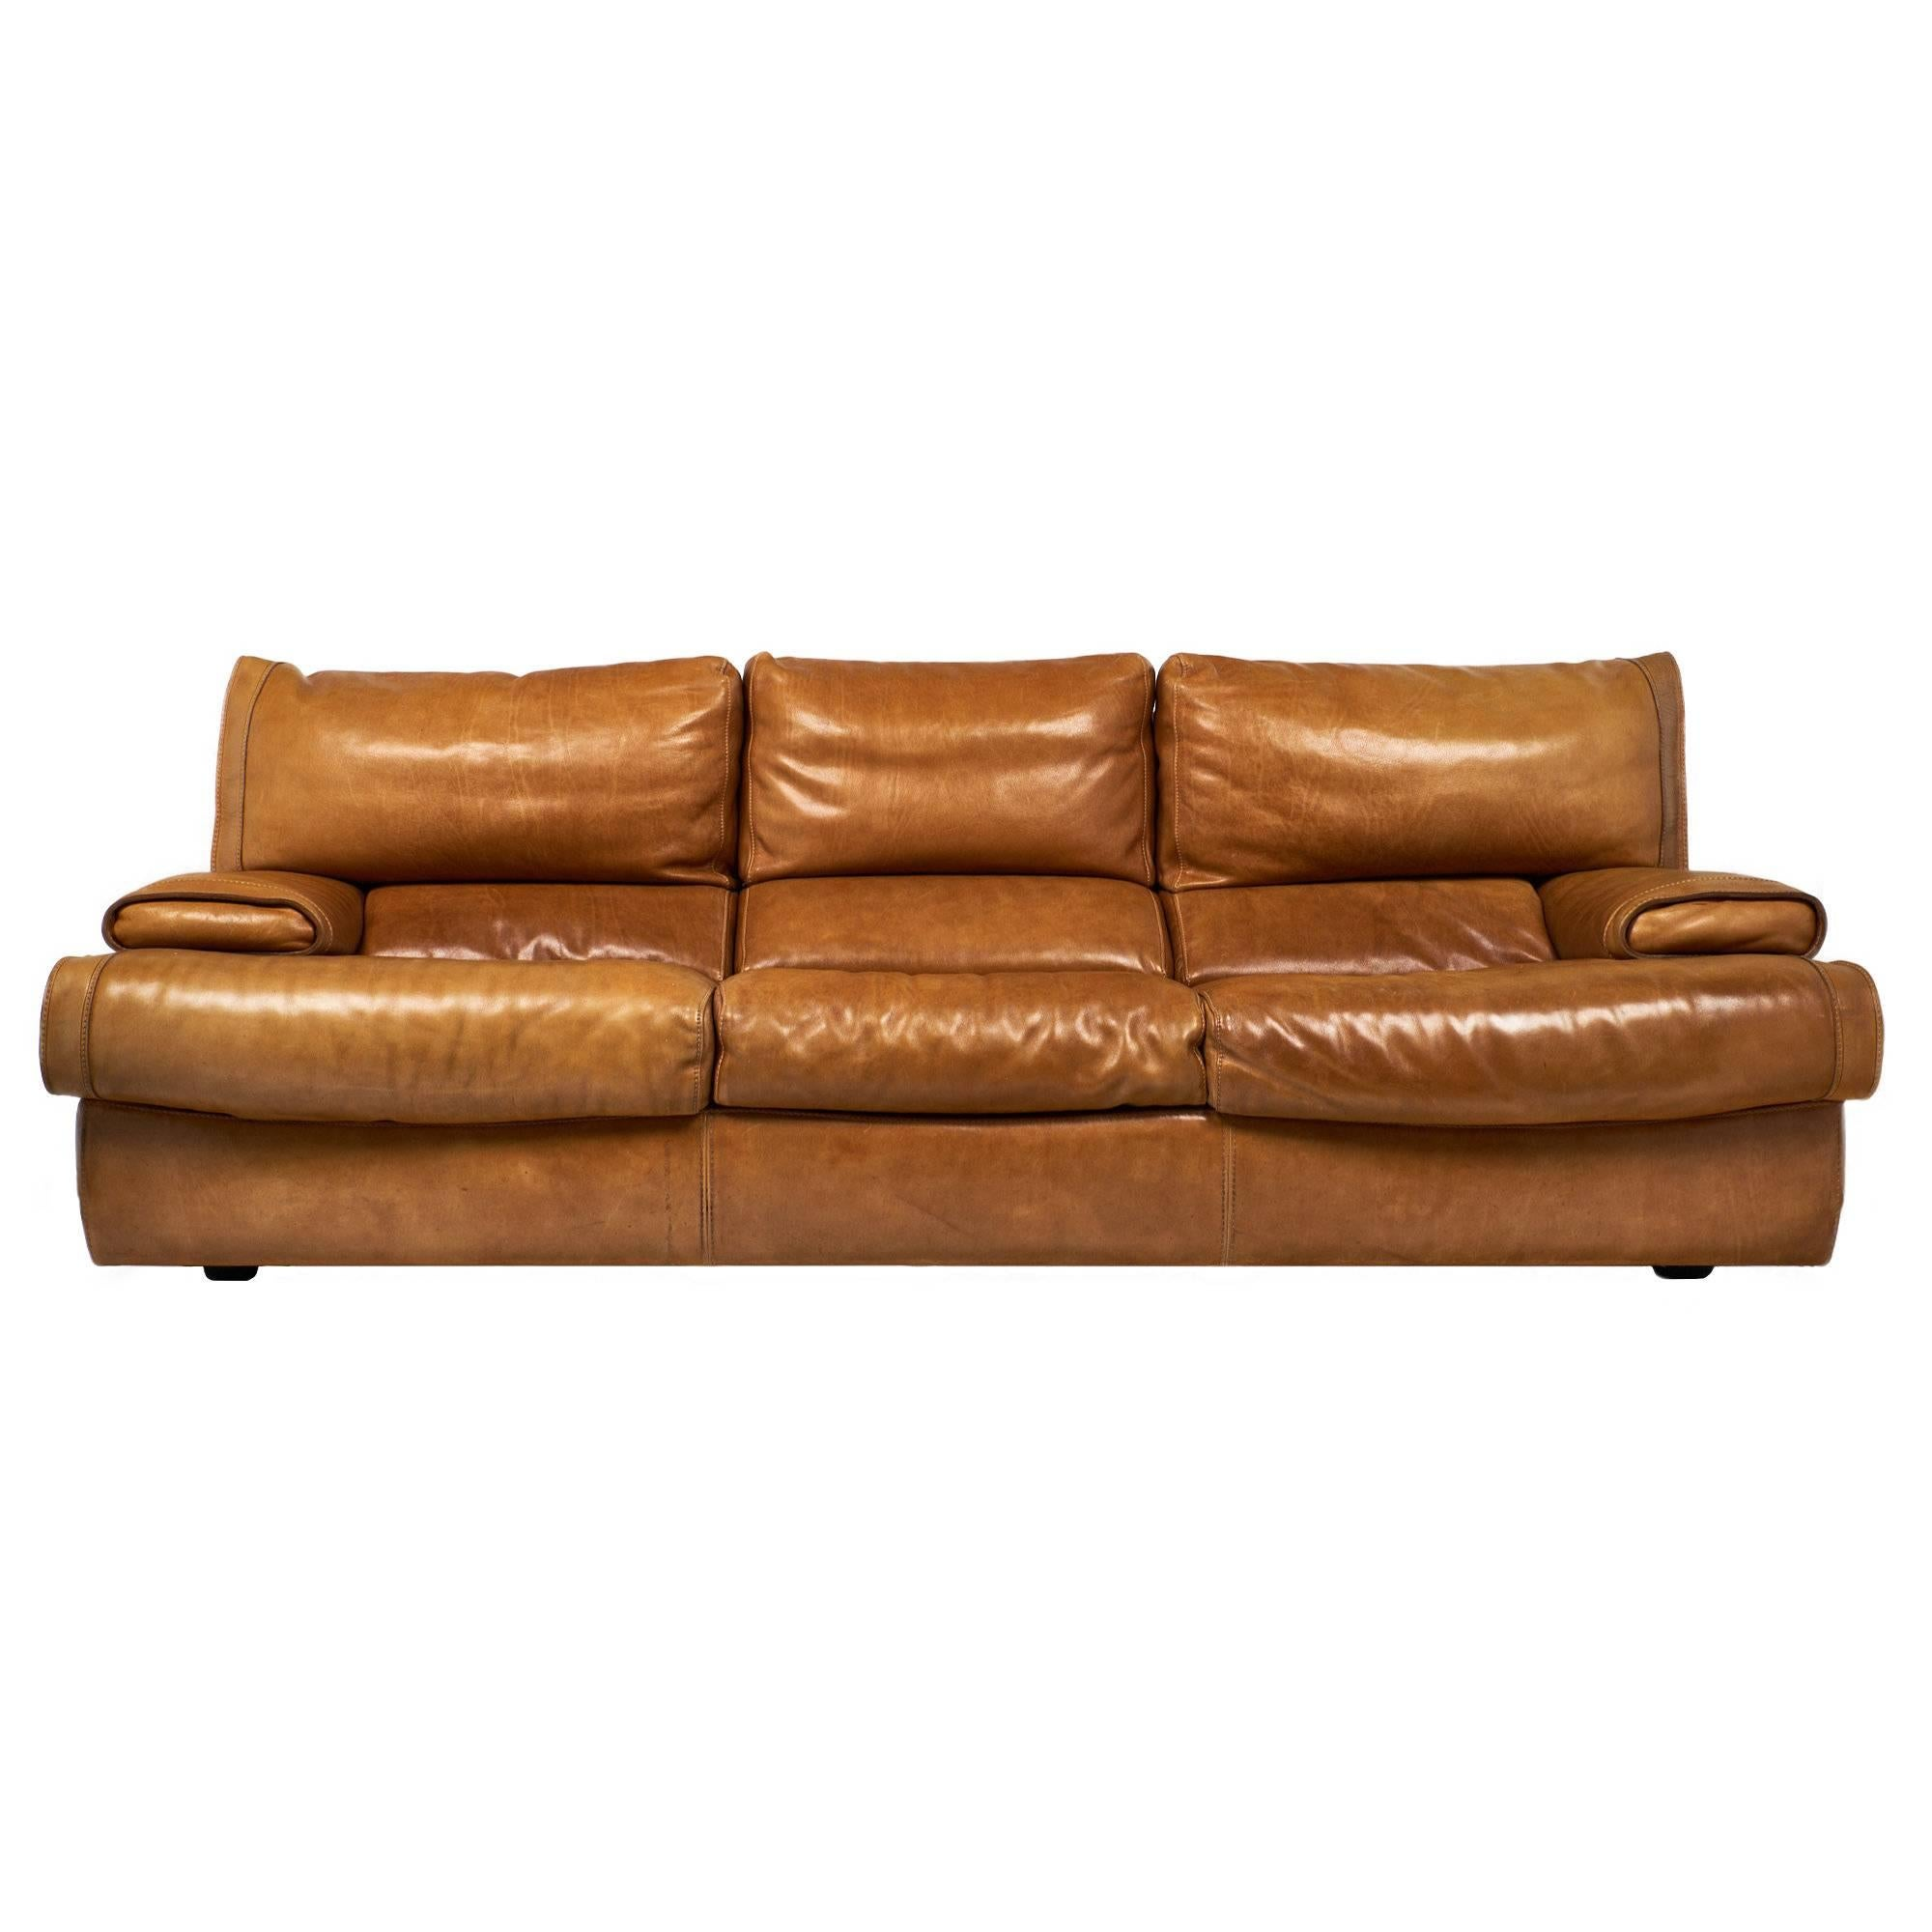 Rolf Benz Sofa Pfister Sofa Sets 8874 For Sale On 1stdibs